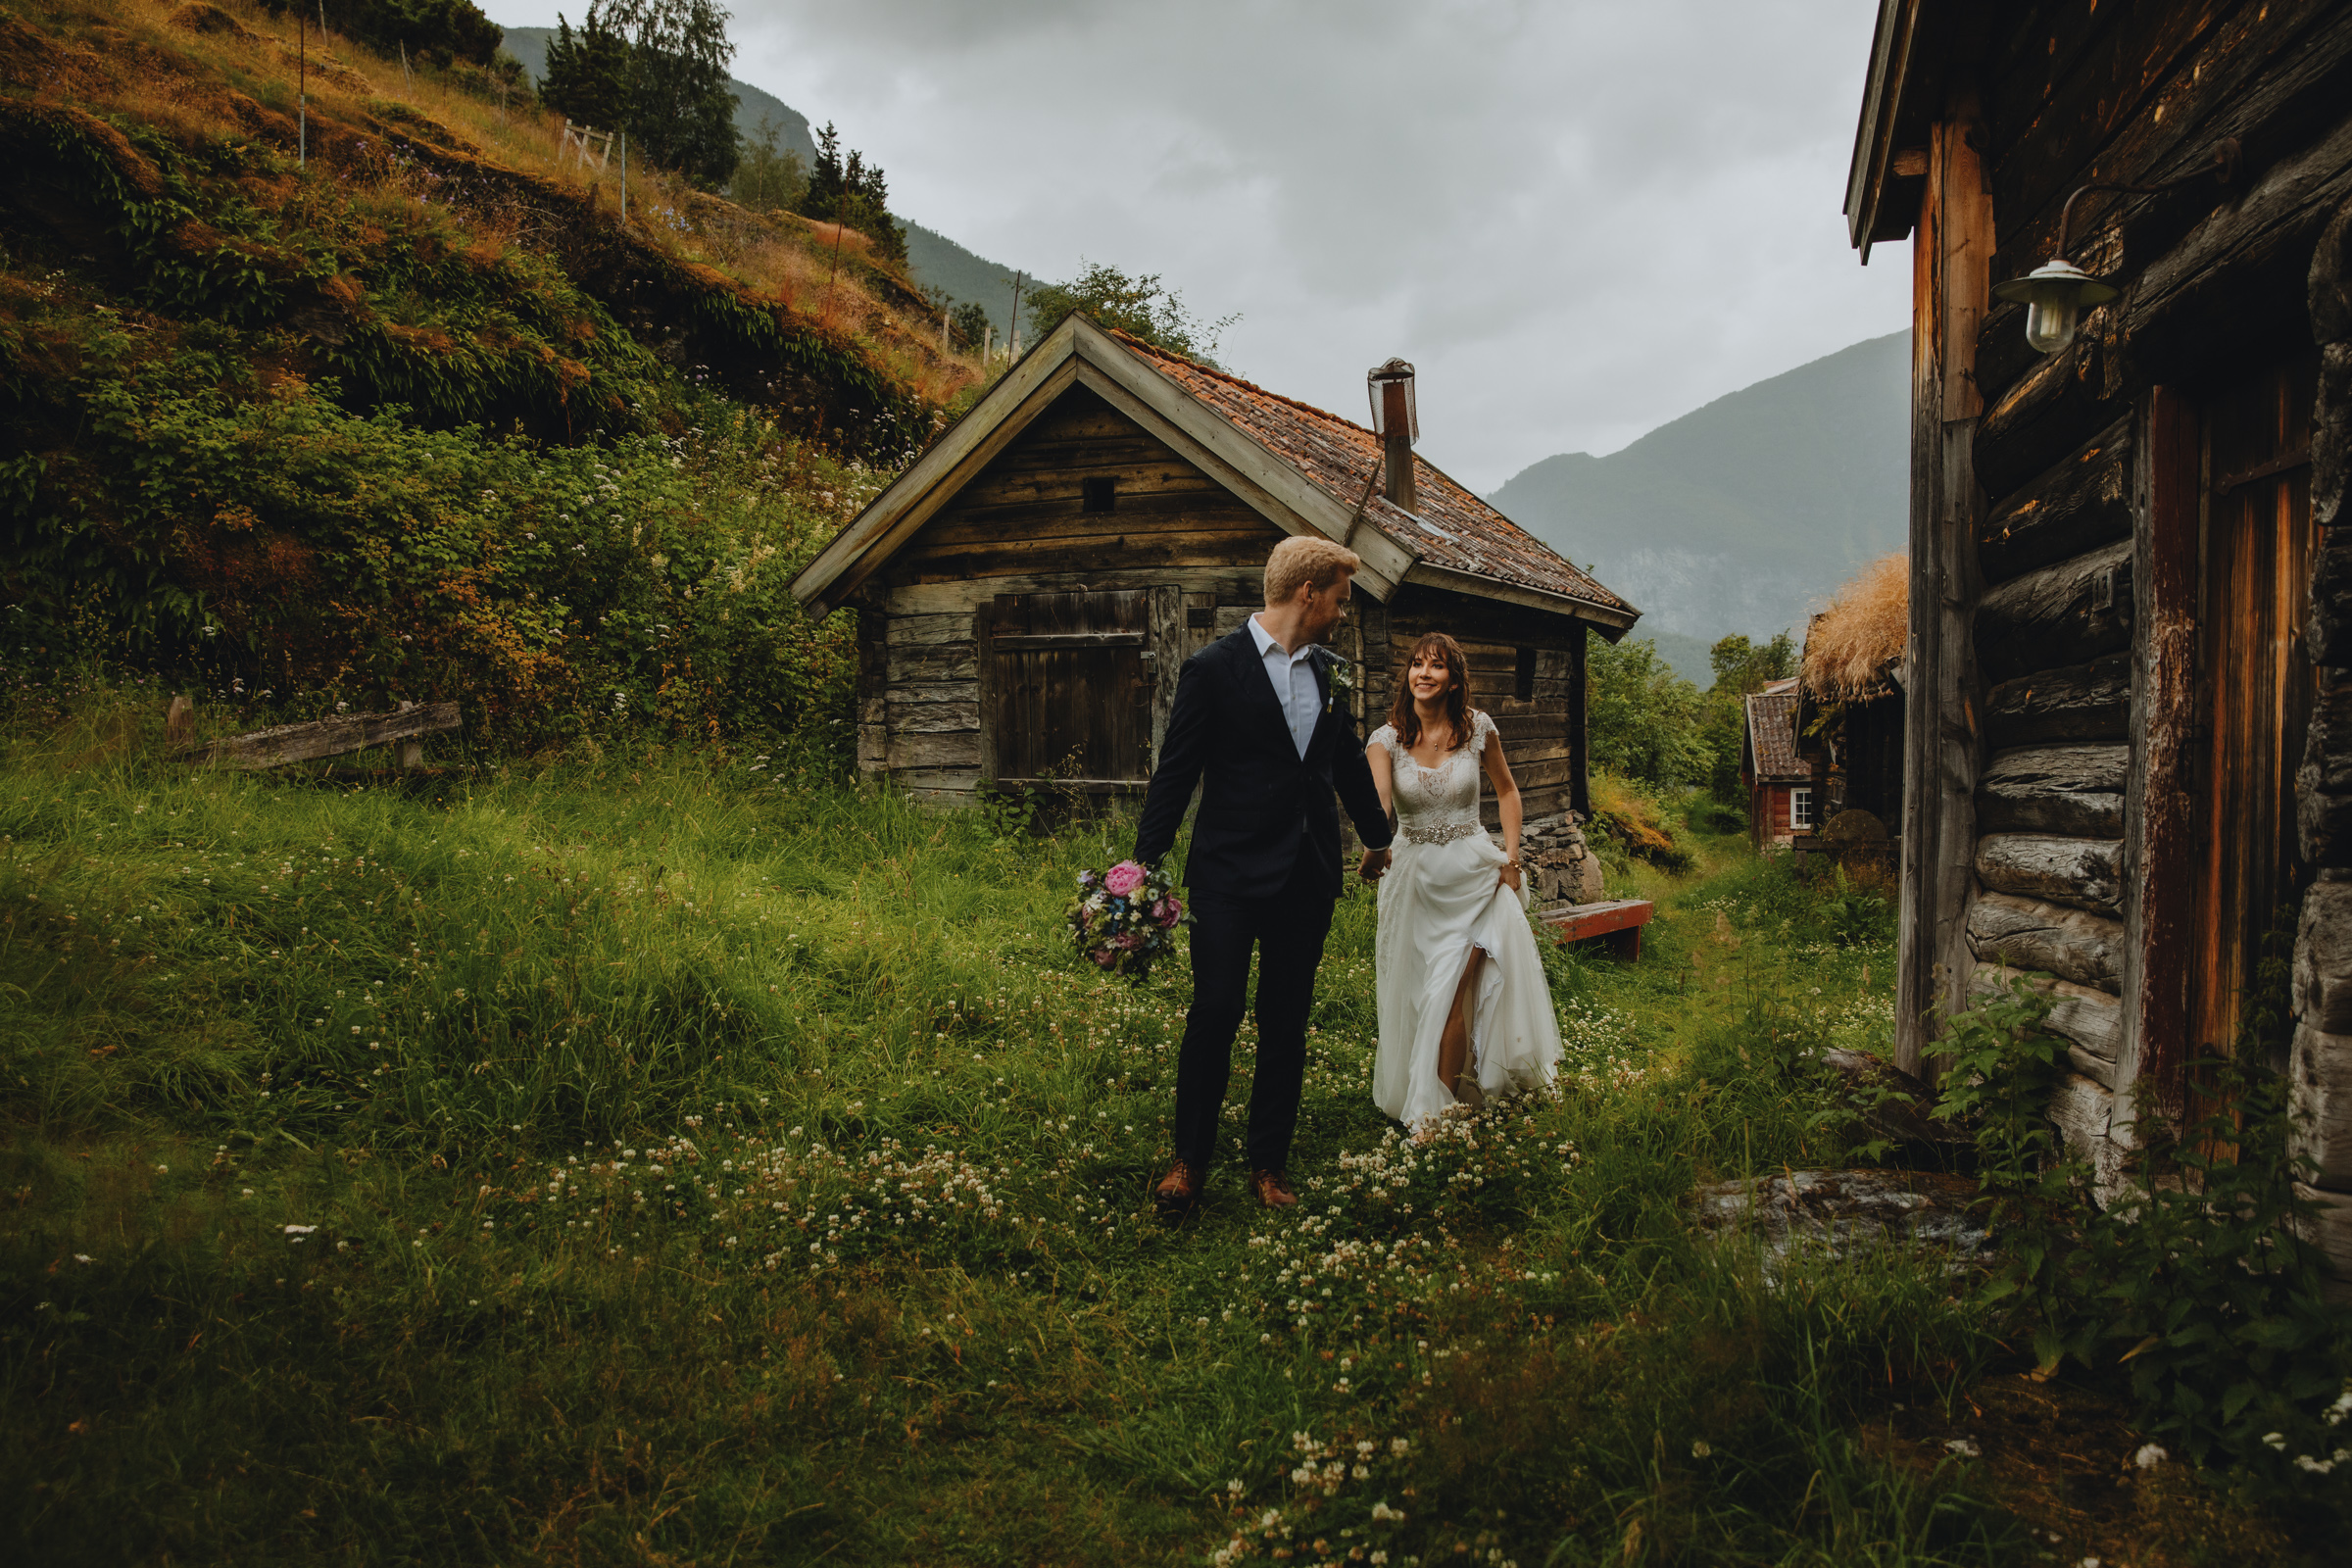 elopement-couple-among-rustic-cabins-in-aurland-norway-christin-eide-photography